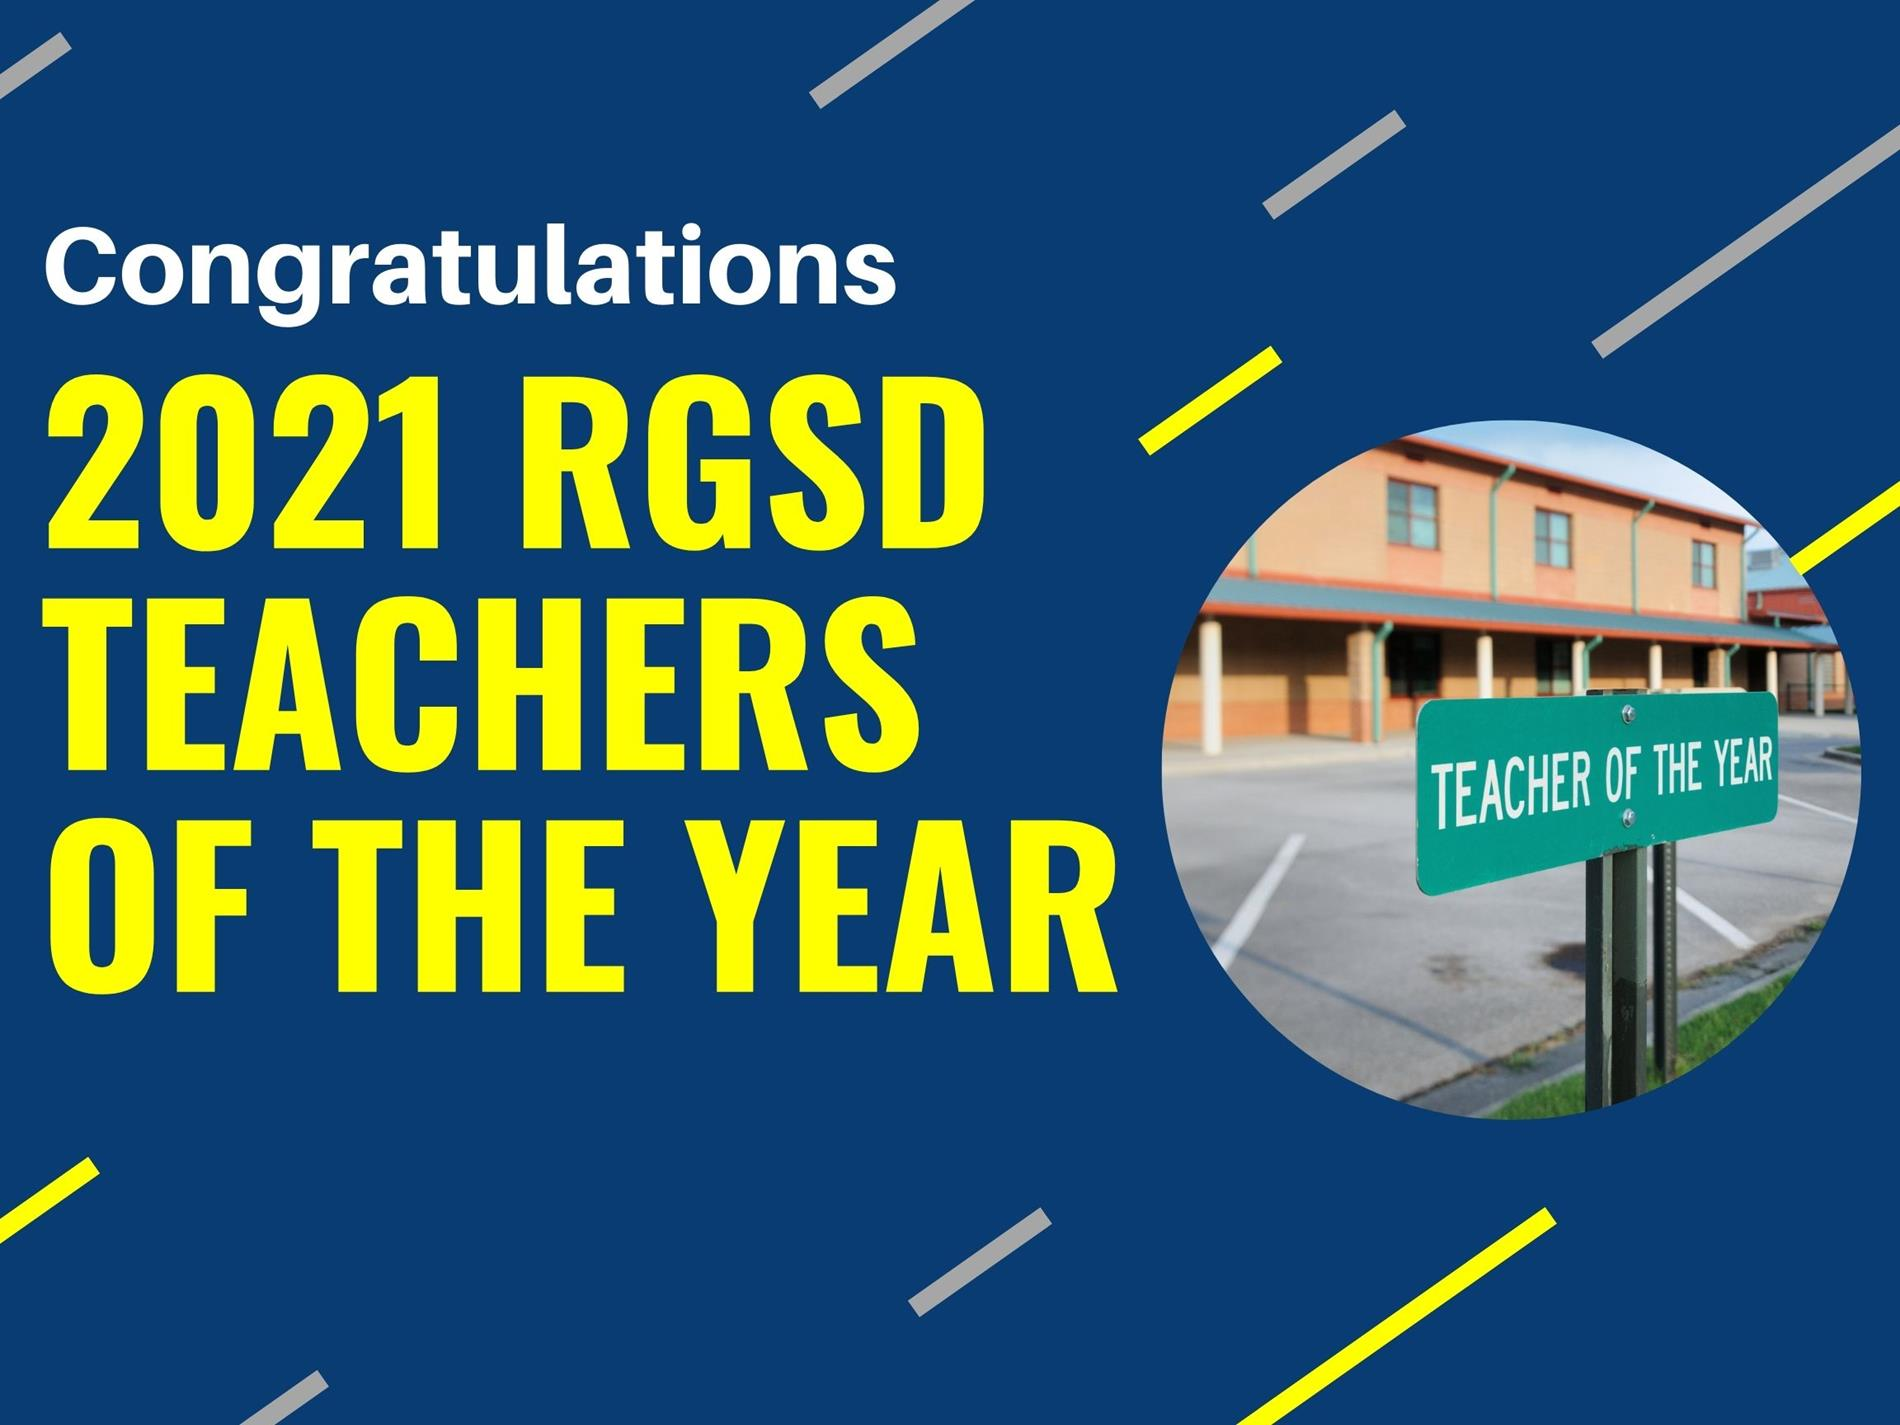 RGSD Teachers of the Year